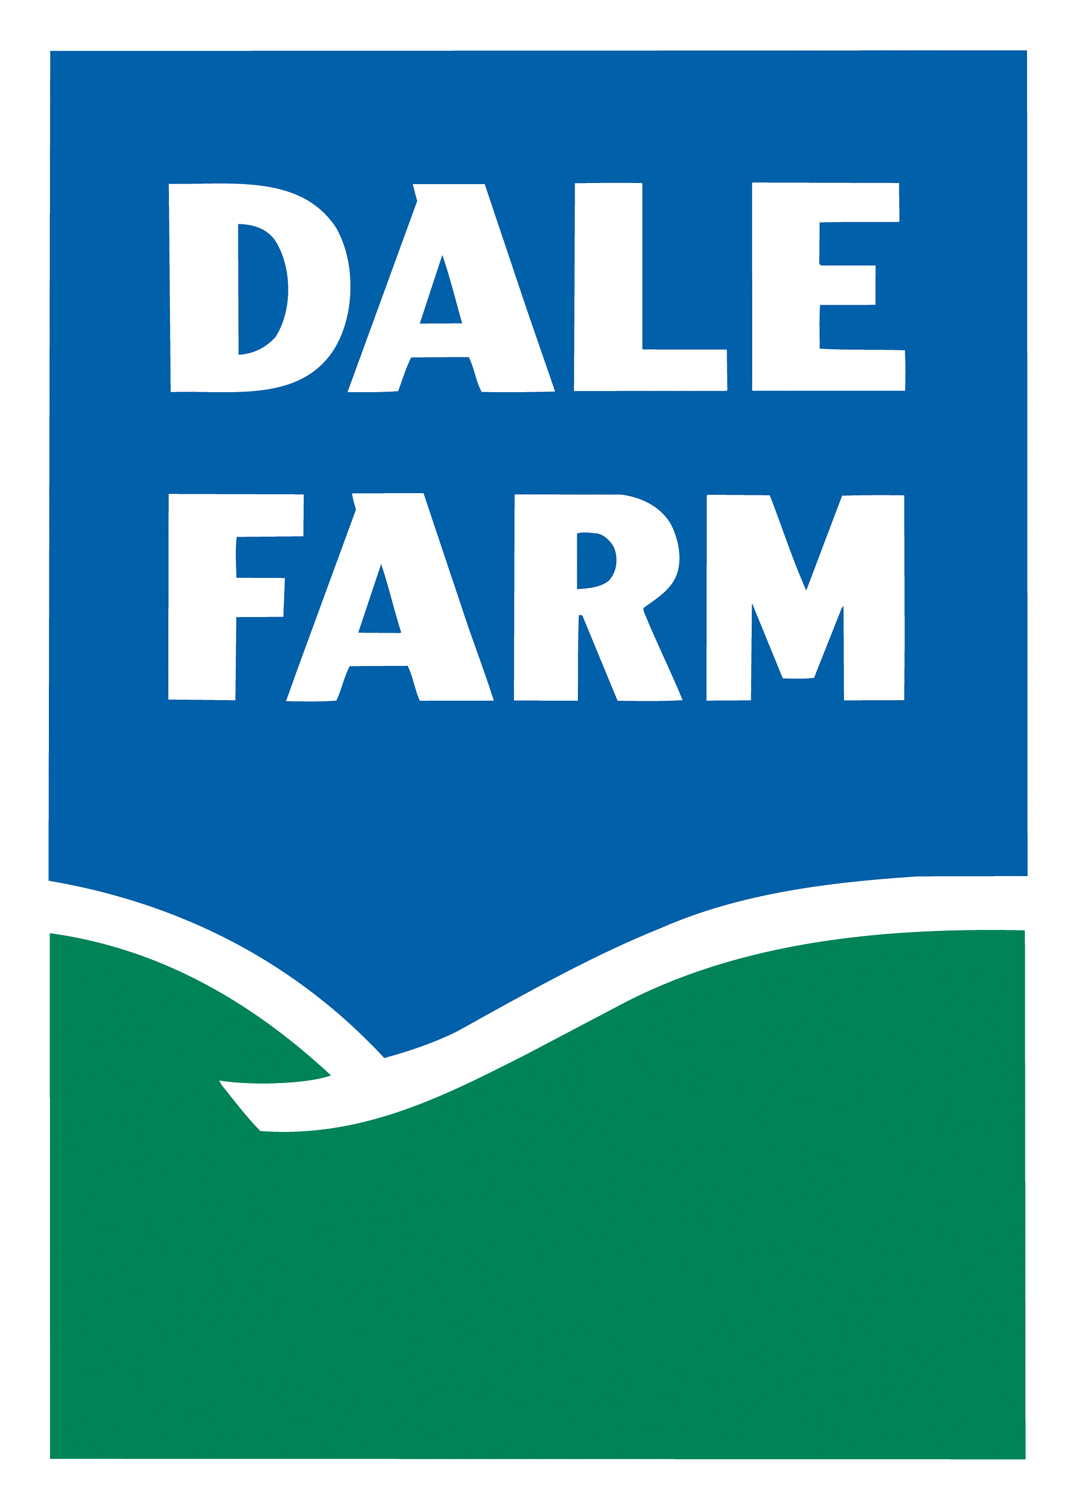 Dale Farm buys Ash Manor Cheese